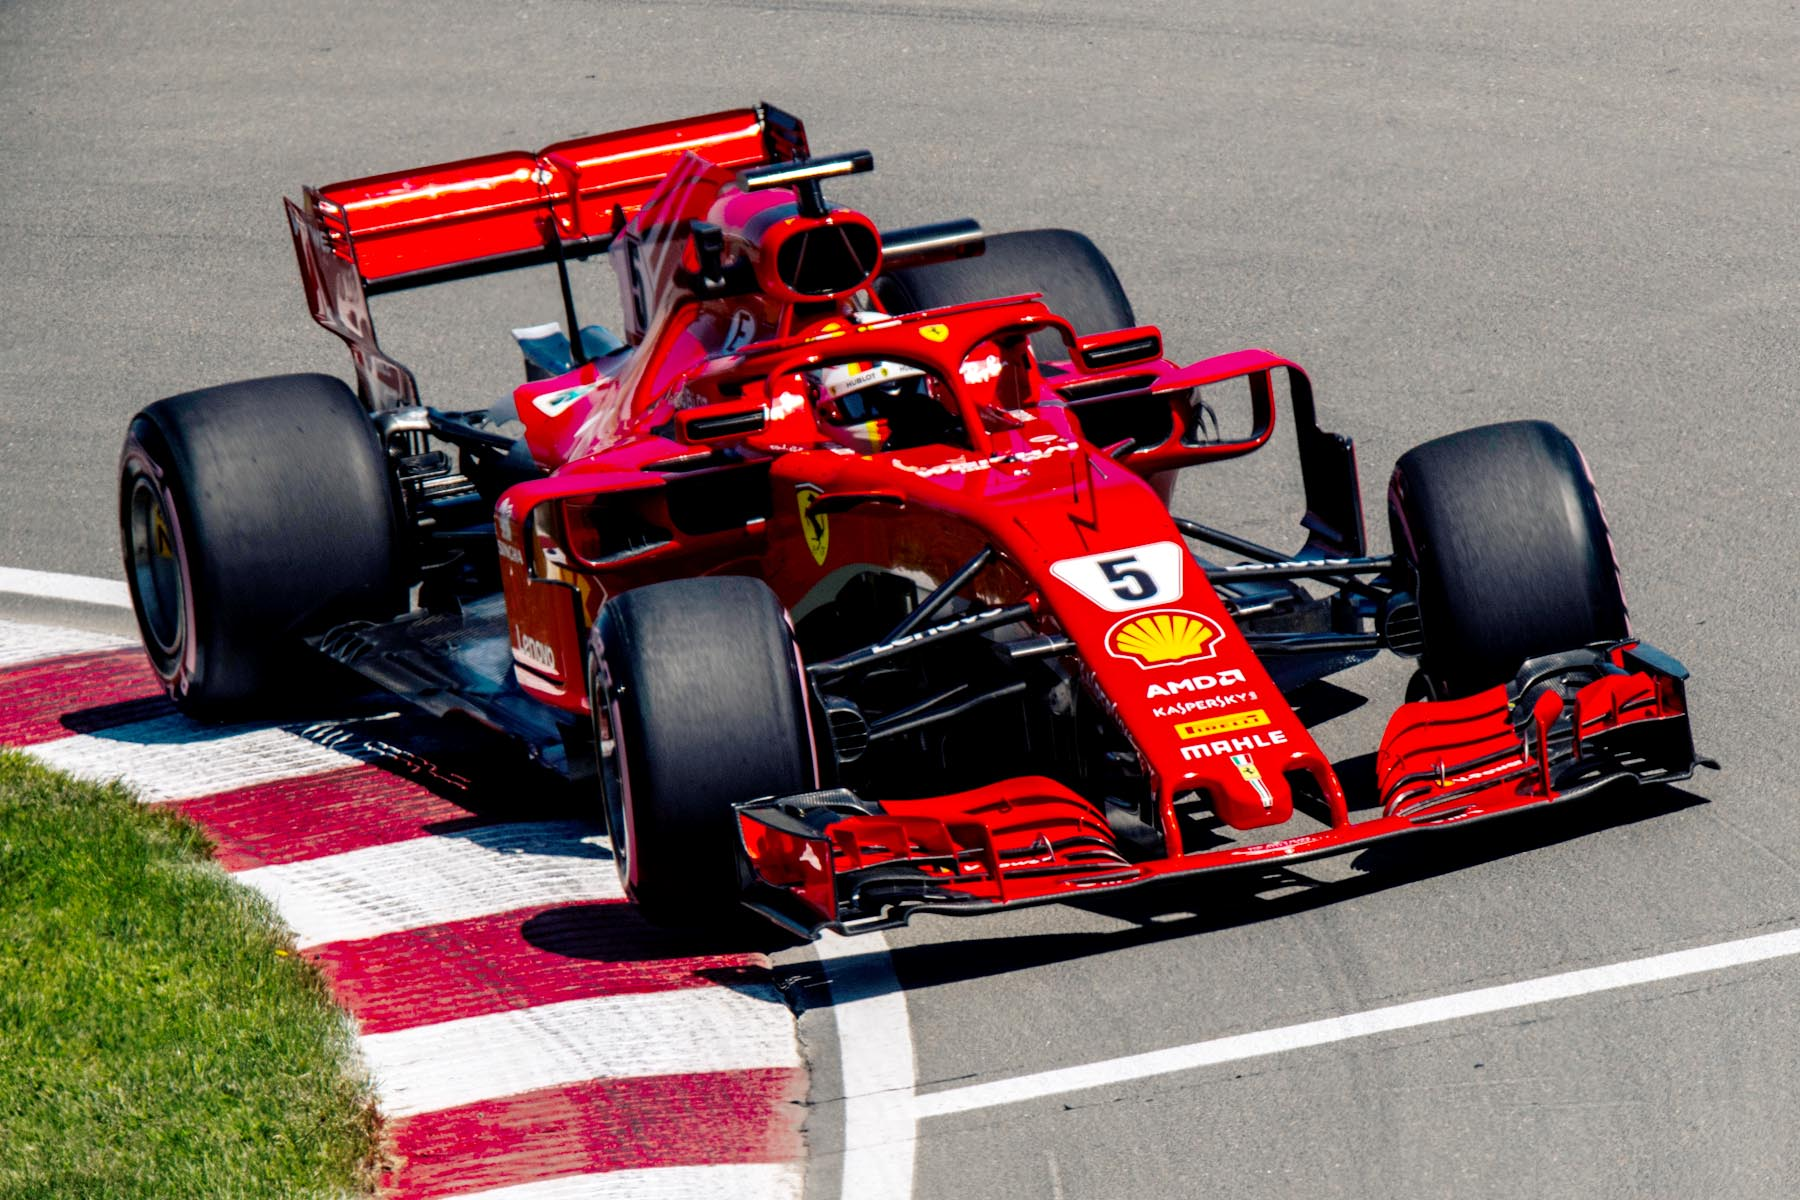 Sebastian Vettel on track at the 2018 Canadian Grand Prix.